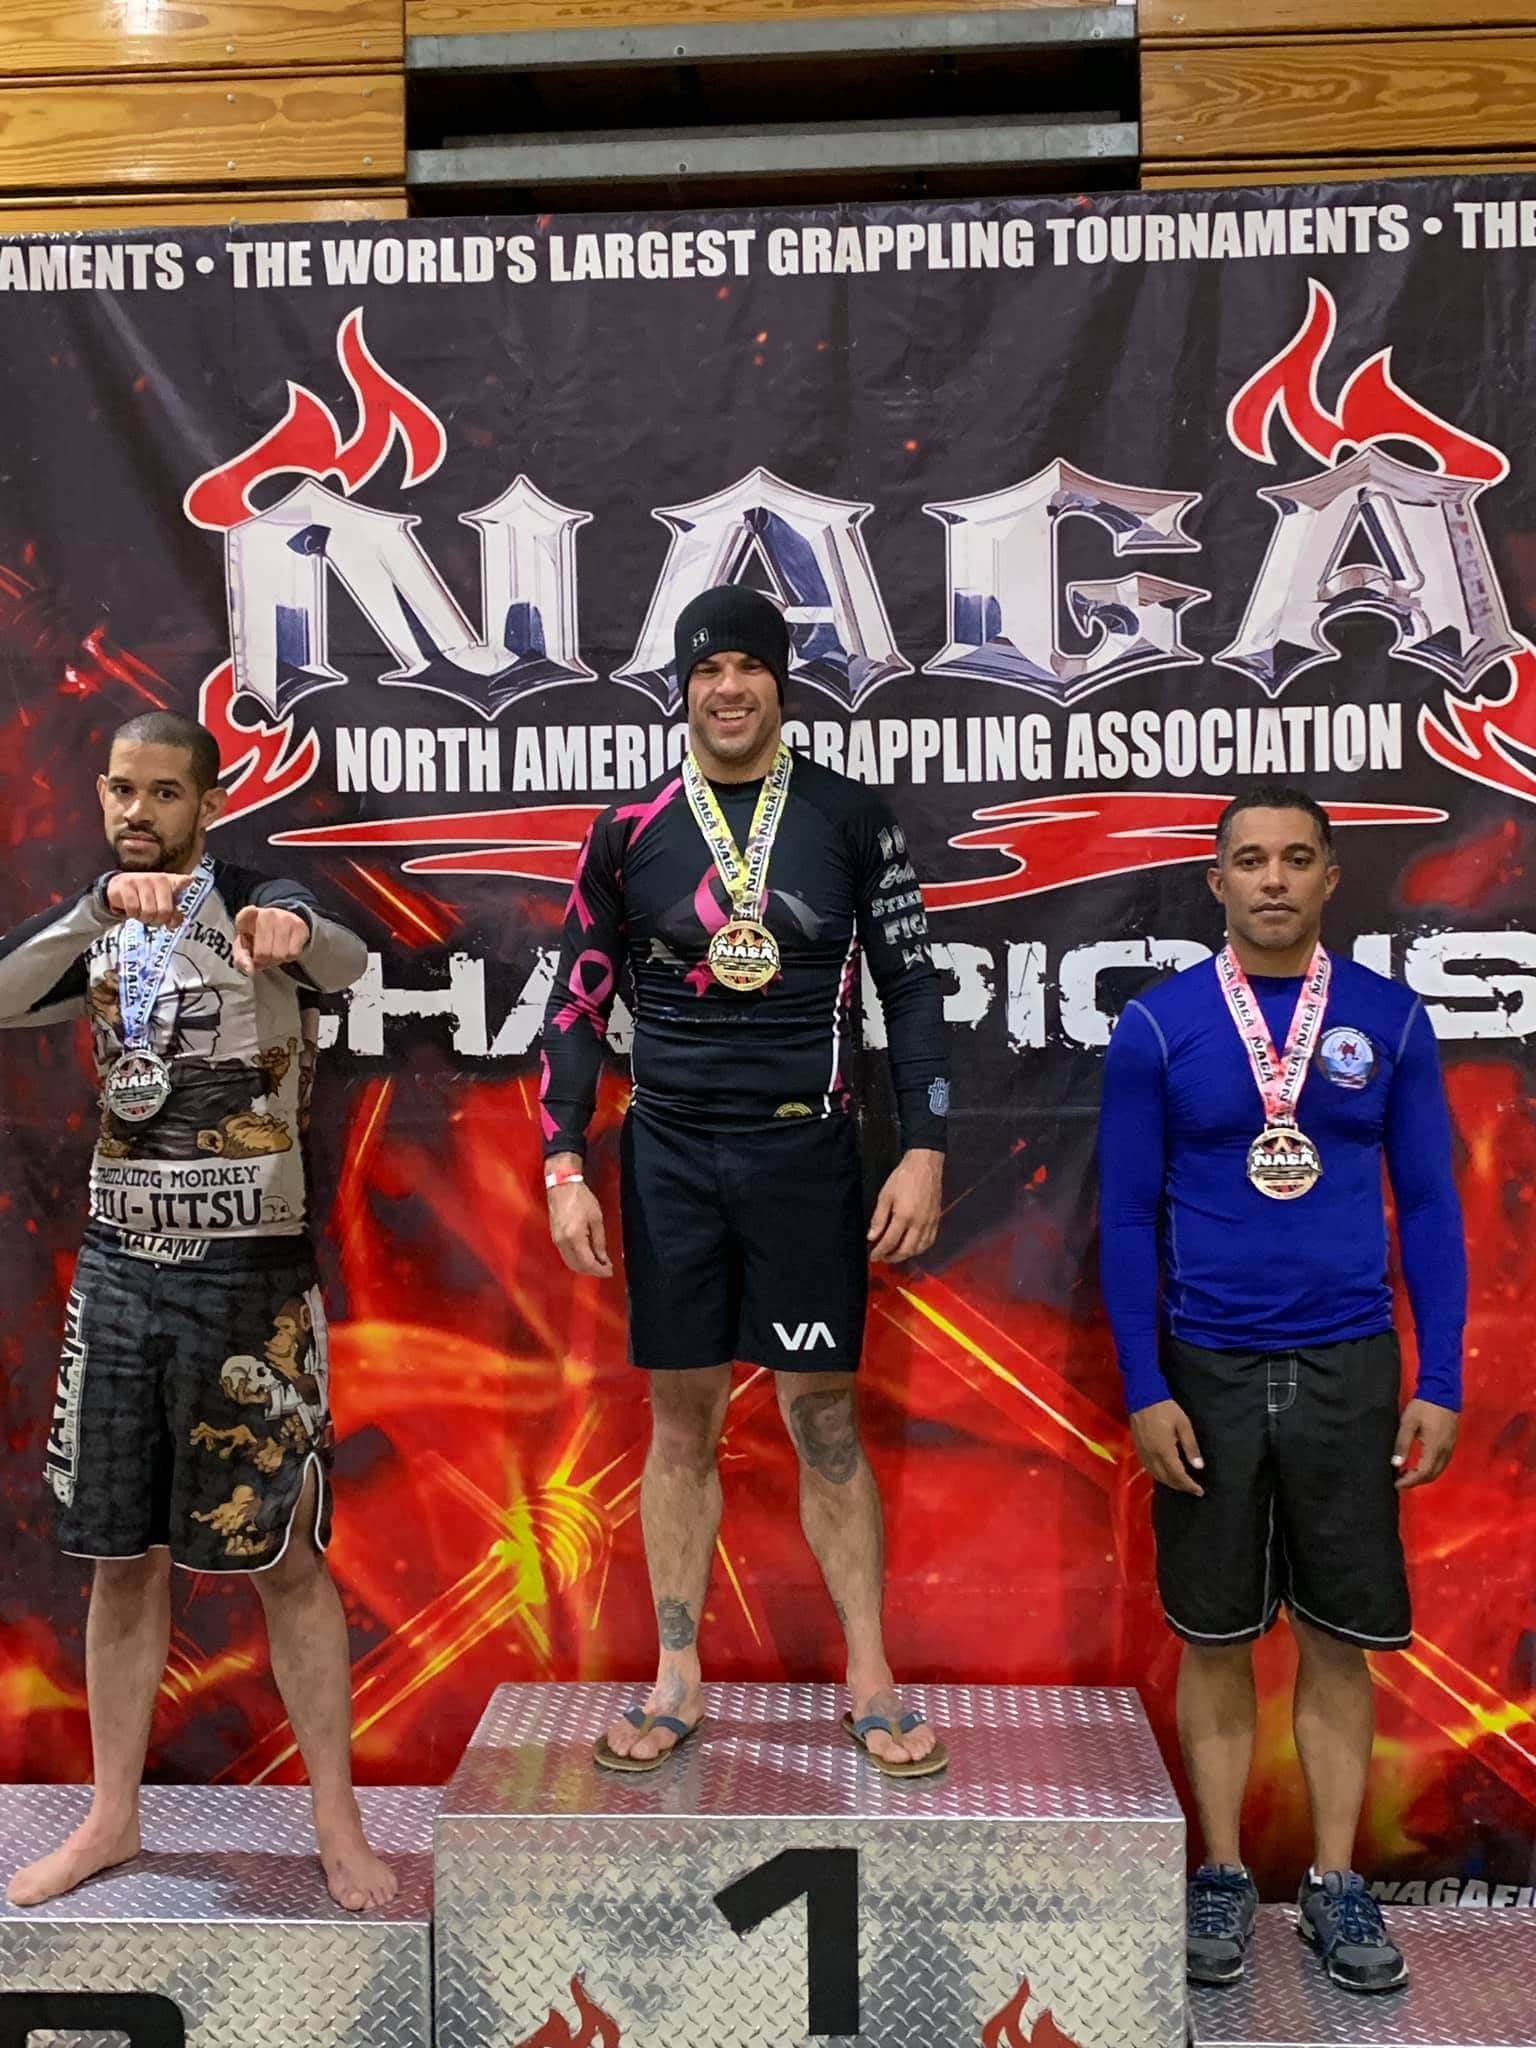 North American Grappling Association Men's Winners Podium